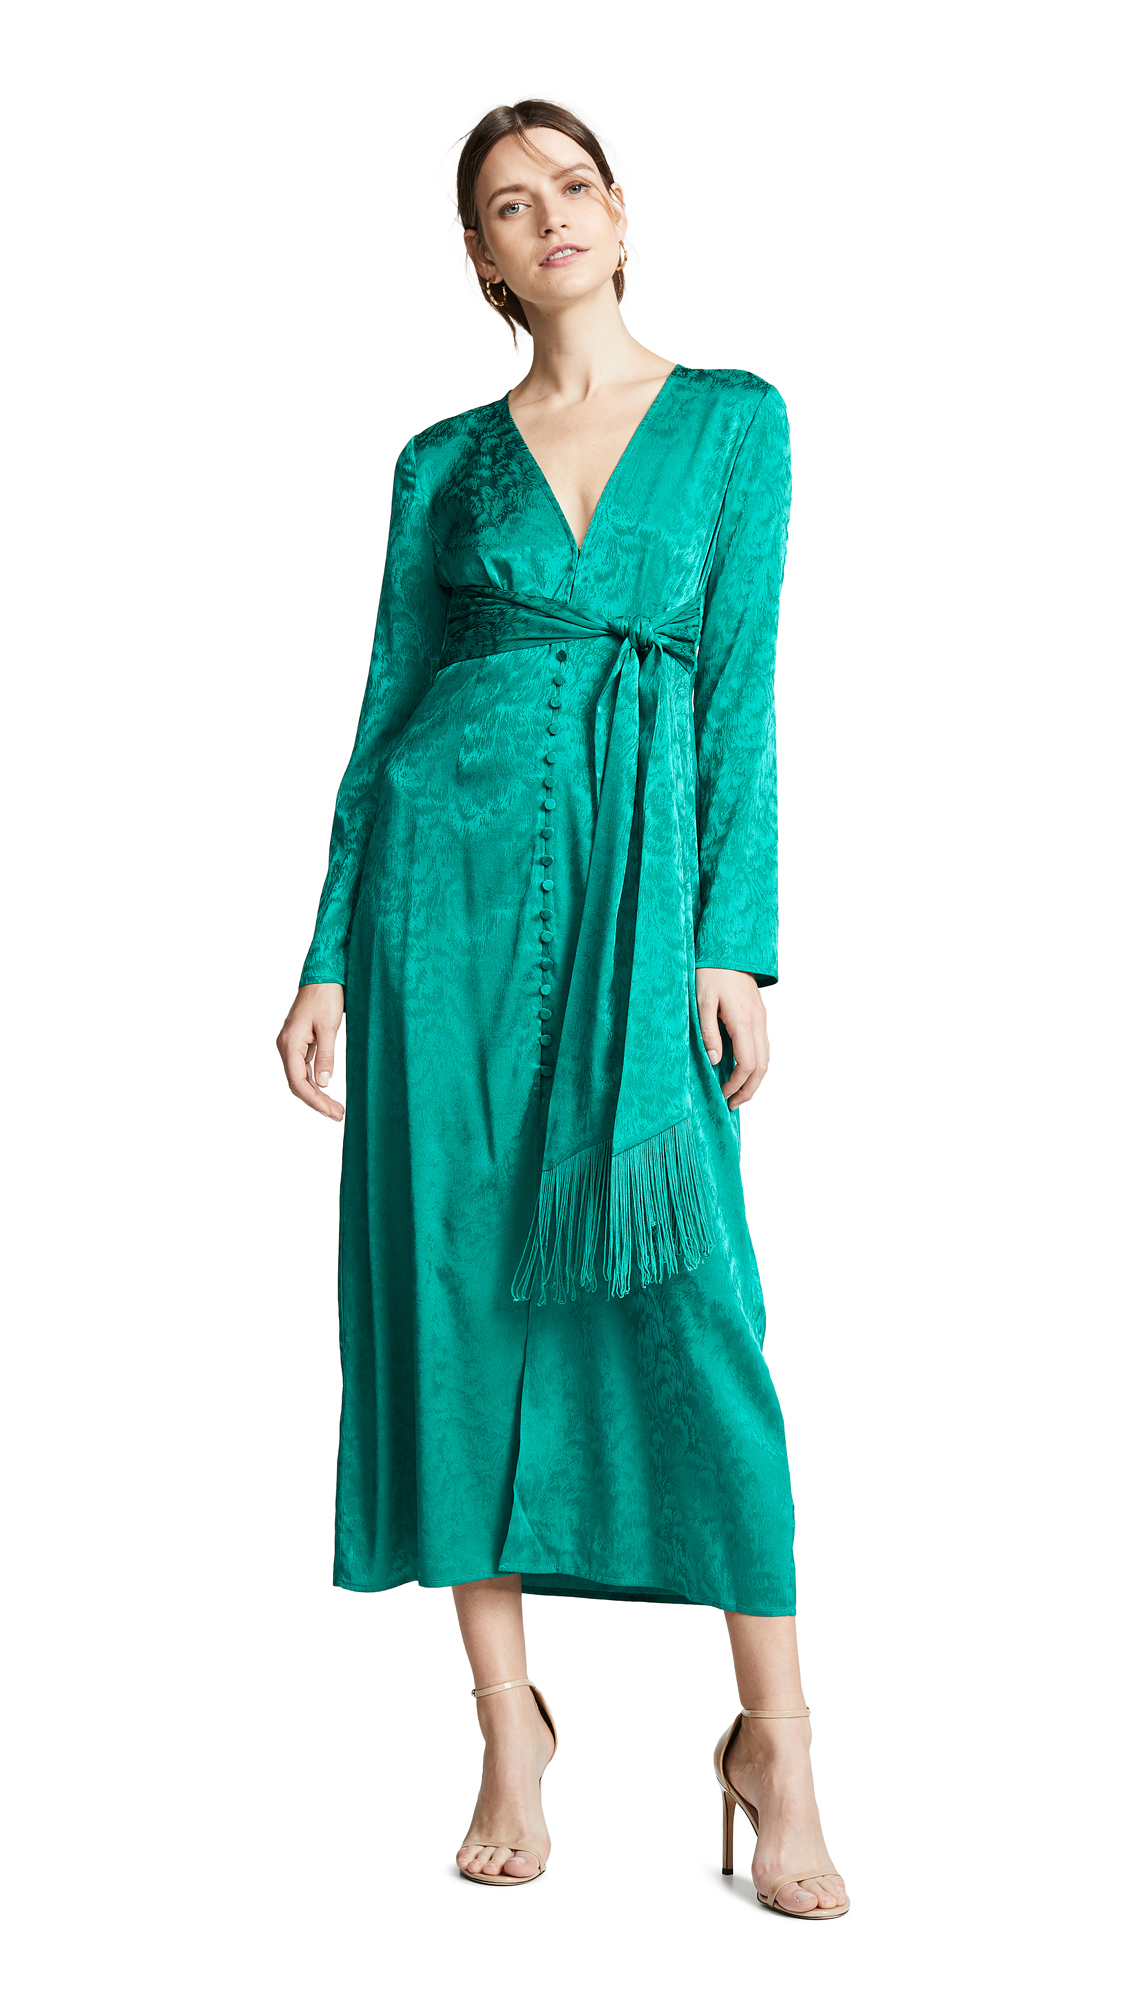 THURLEY Violeta Dress - Emerald